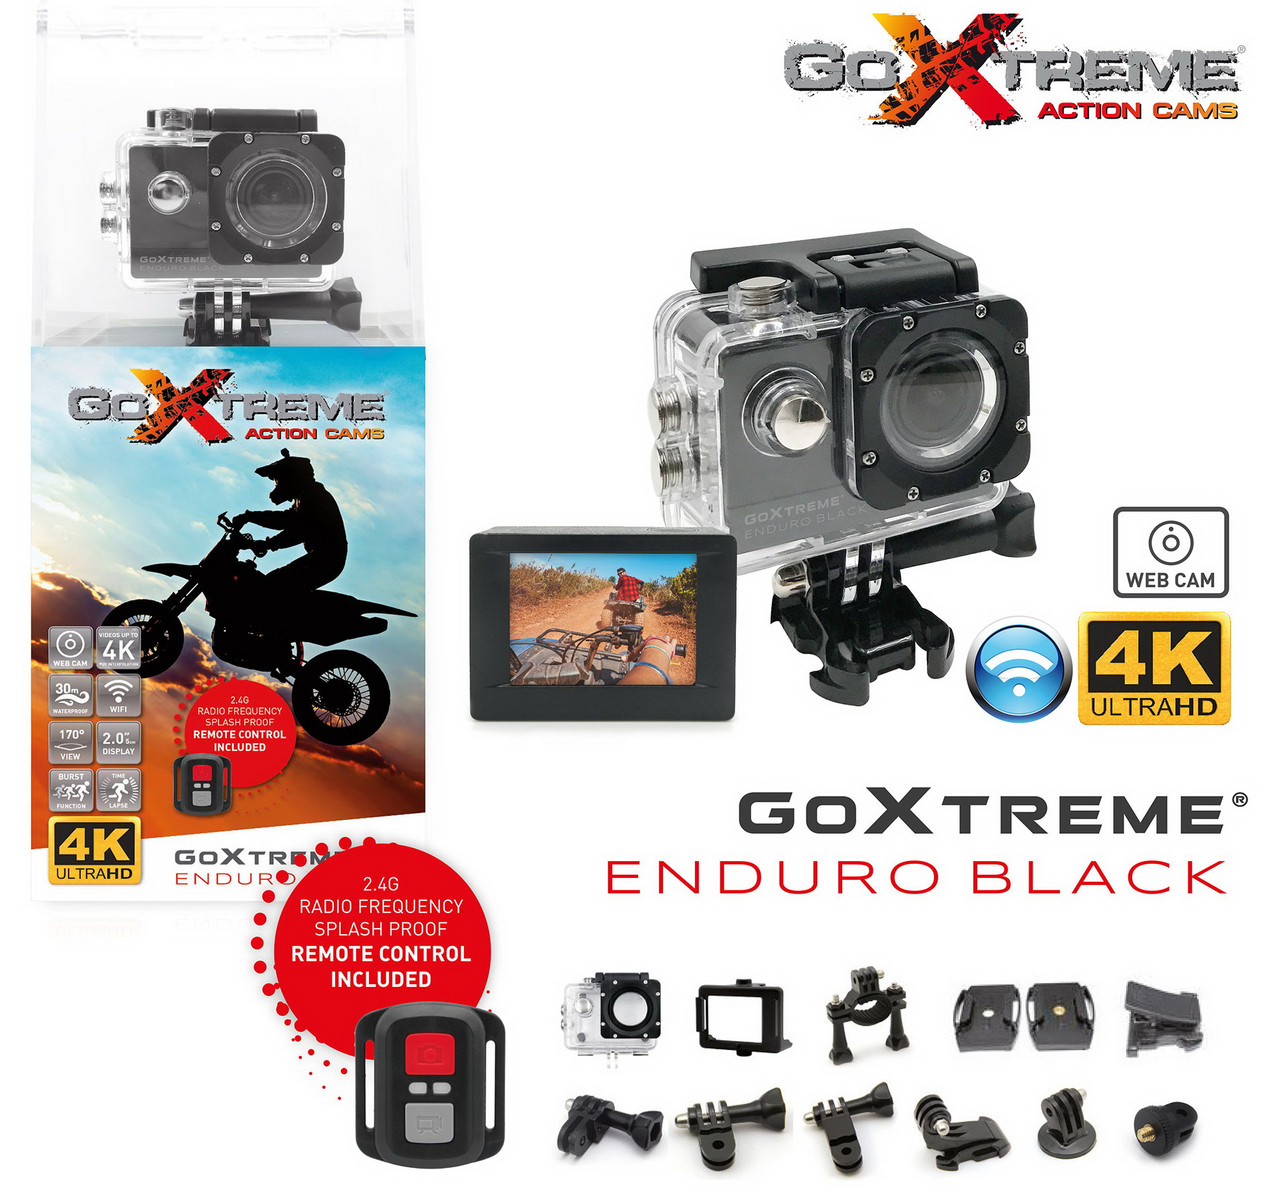 goxtreme enduro black 8 mp actioncam mit 170 grad optik. Black Bedroom Furniture Sets. Home Design Ideas